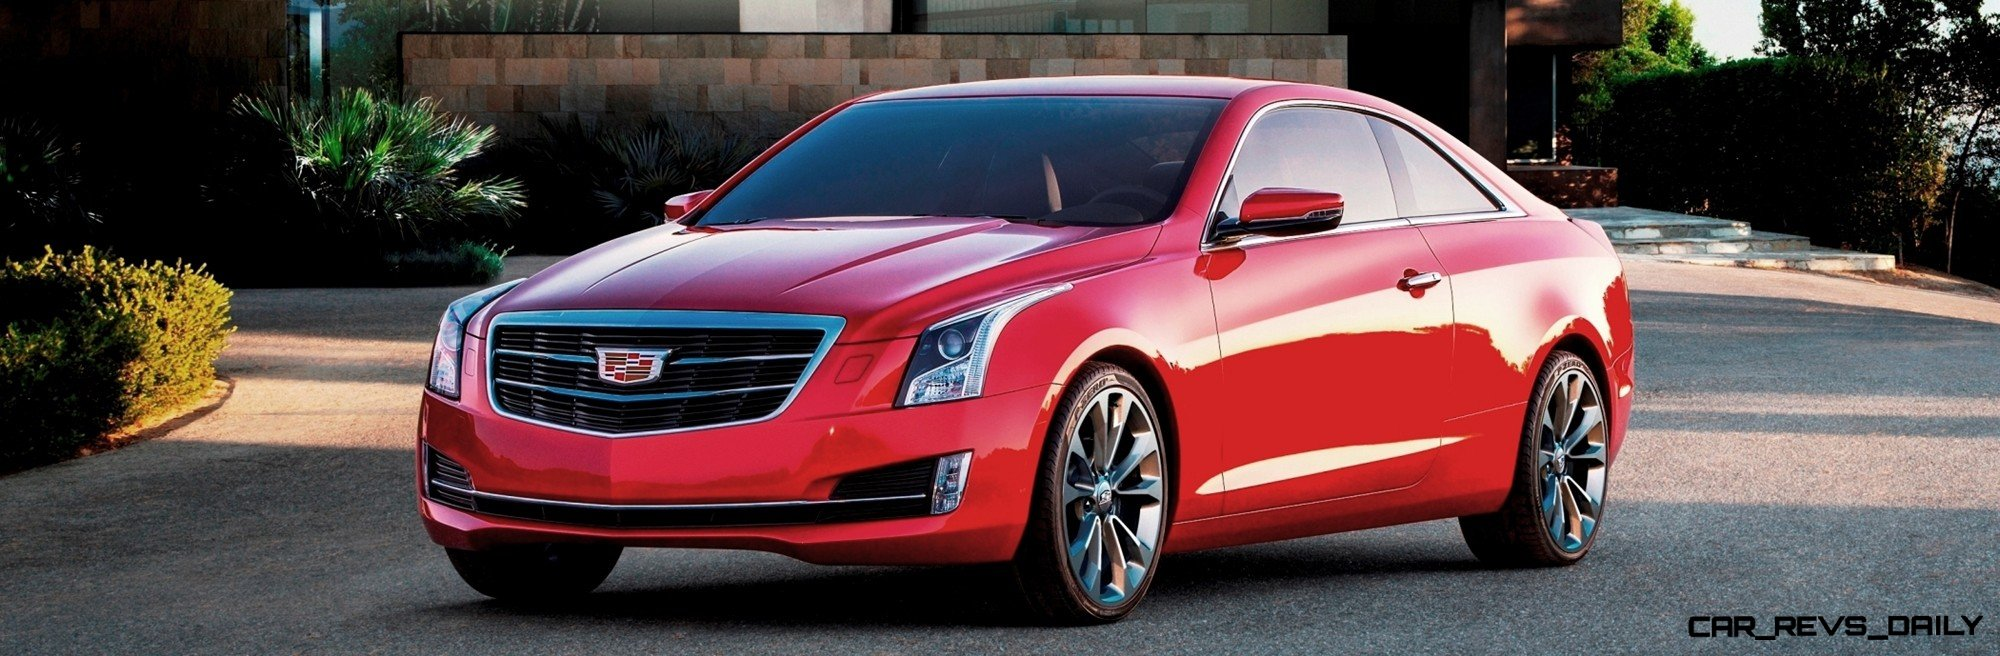 2015 cadillac ats coupe includes overboost and 0 60 sprint as a 2 0t 6 car revs. Black Bedroom Furniture Sets. Home Design Ideas